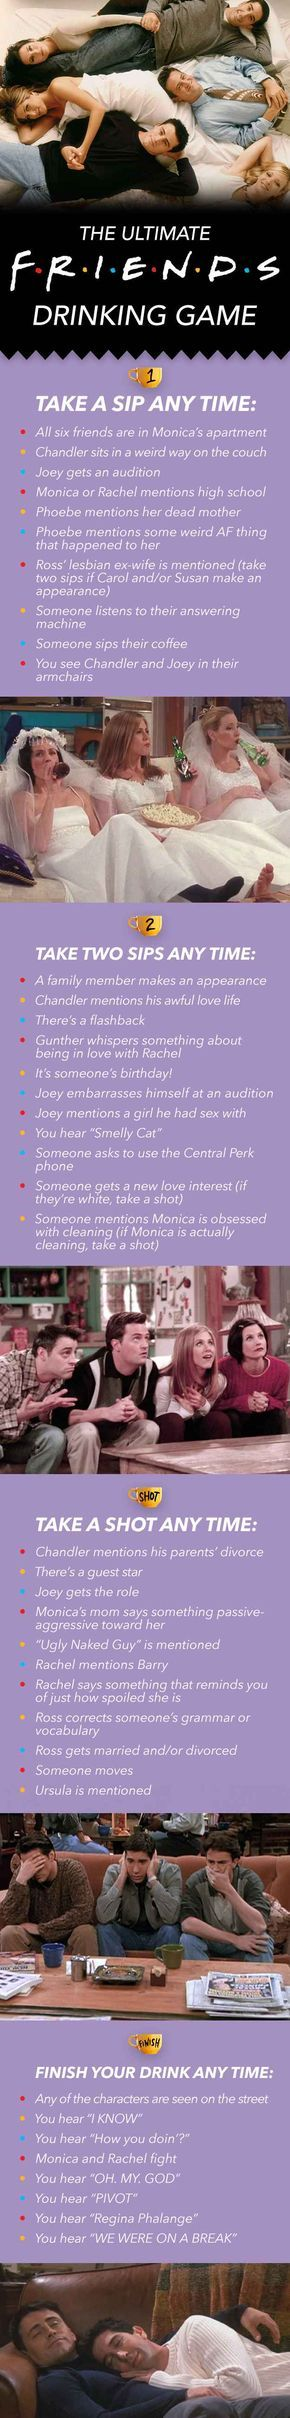 """The Ultimate """"Friends"""" Drinking Game-also known as how to give yourself alcohol poisoning while watching an afternoon of reruns!"""